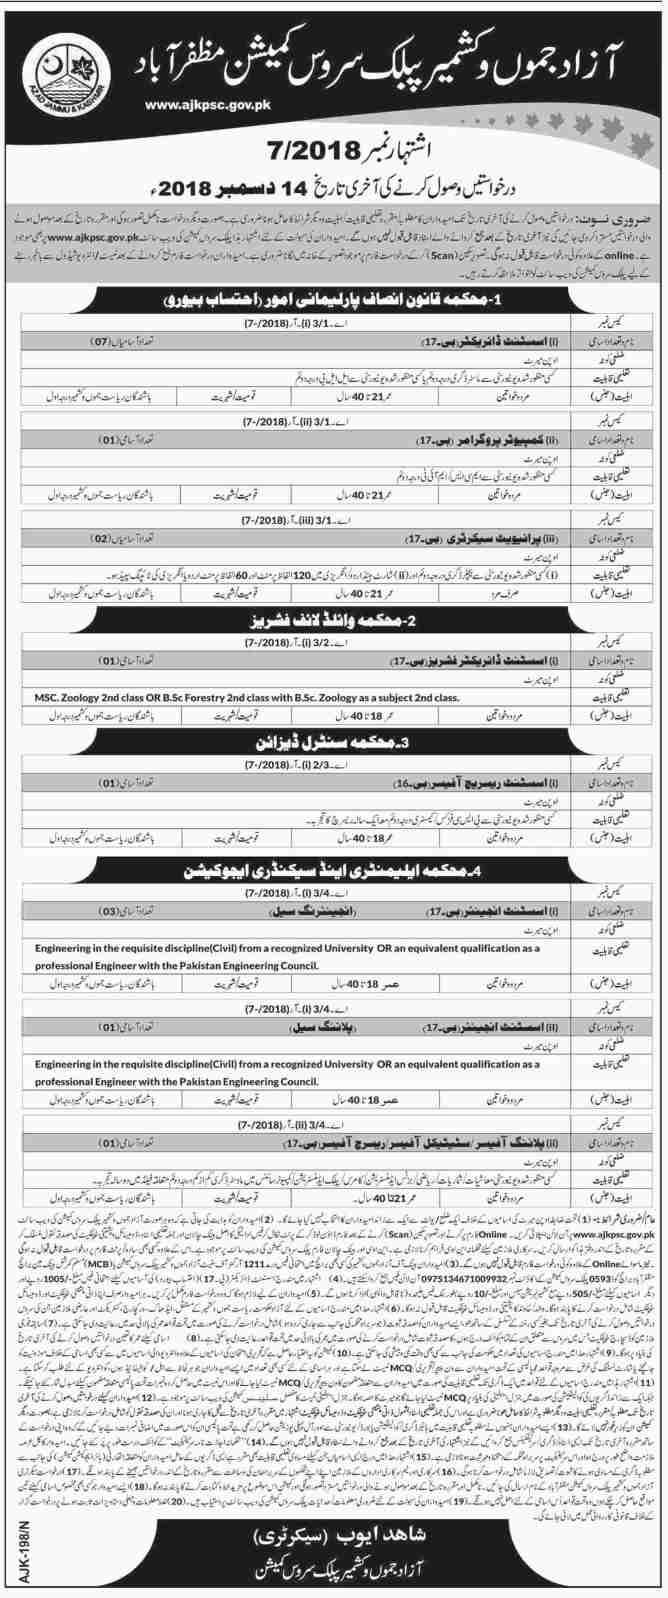 Jobs in Azad Jammu and Kashmir Public Service Commission 2019